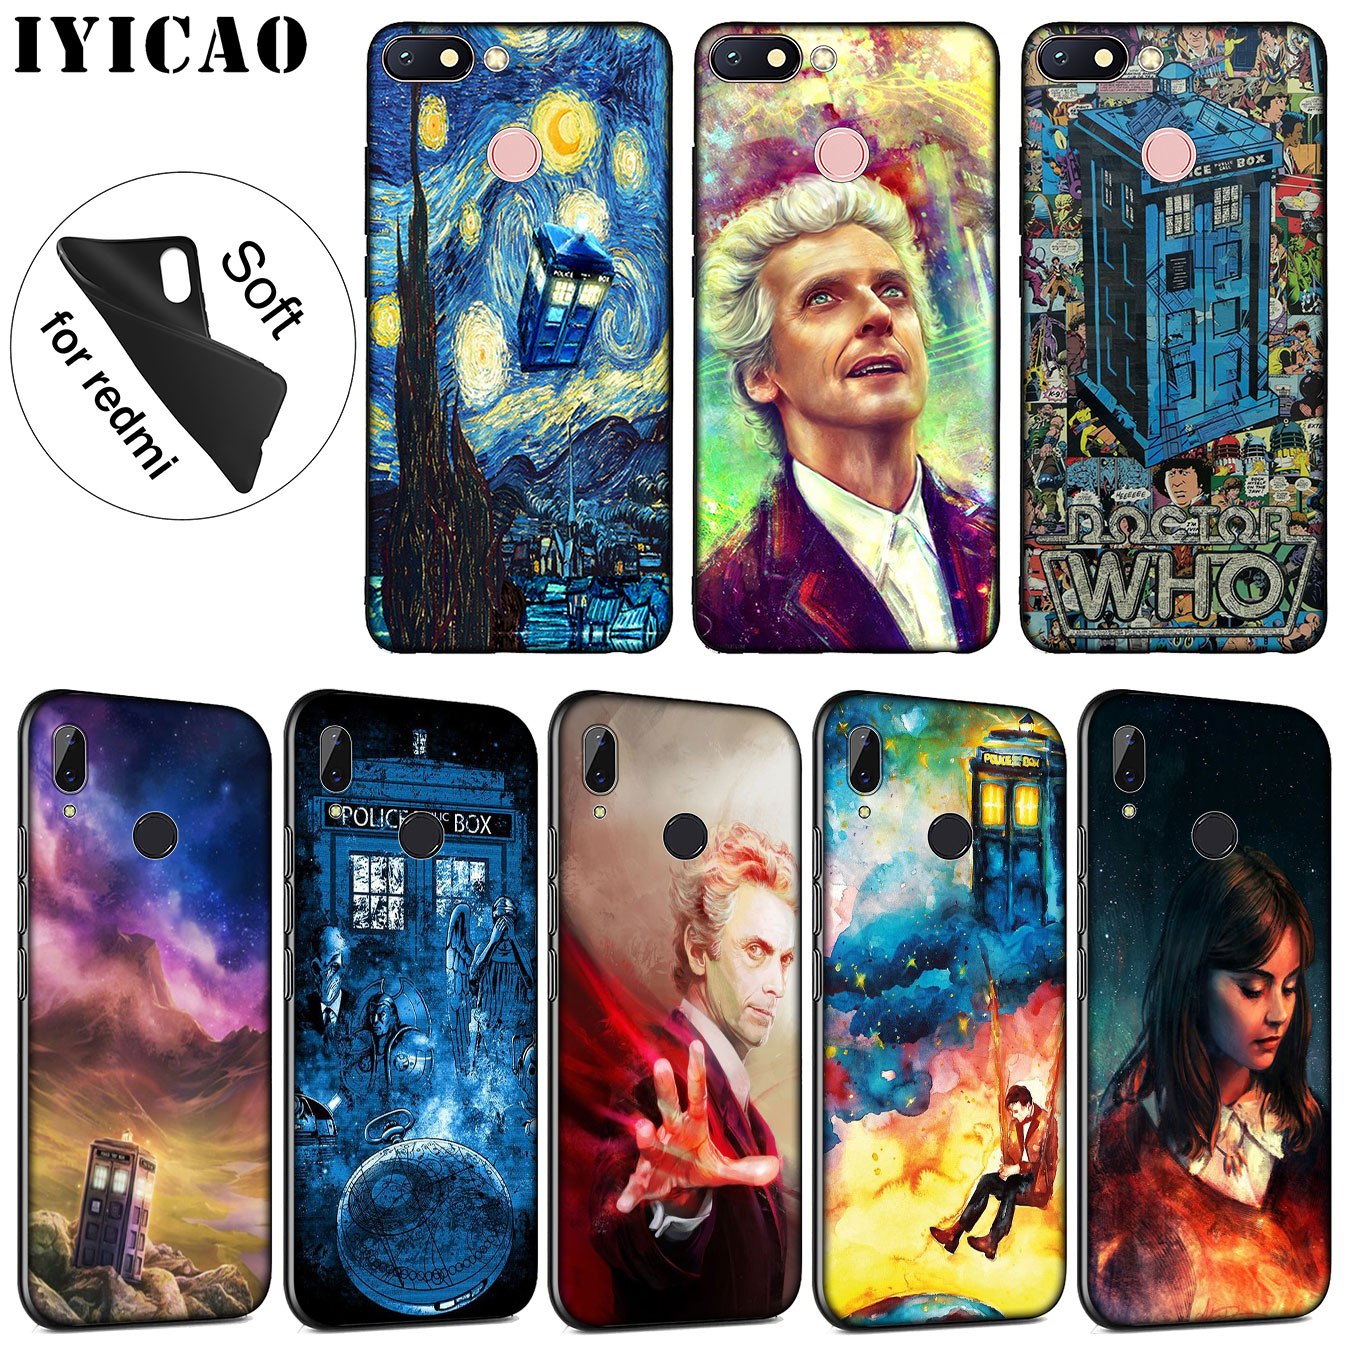 Initiative Iyicao Tardis Box Doctor Who Soft Silicone Phone Case For Xiaomi Redmi 6a 5a Note 7 4 4x 5 Plus 6 Pro Black Tpu Cover Phone Bags & Cases